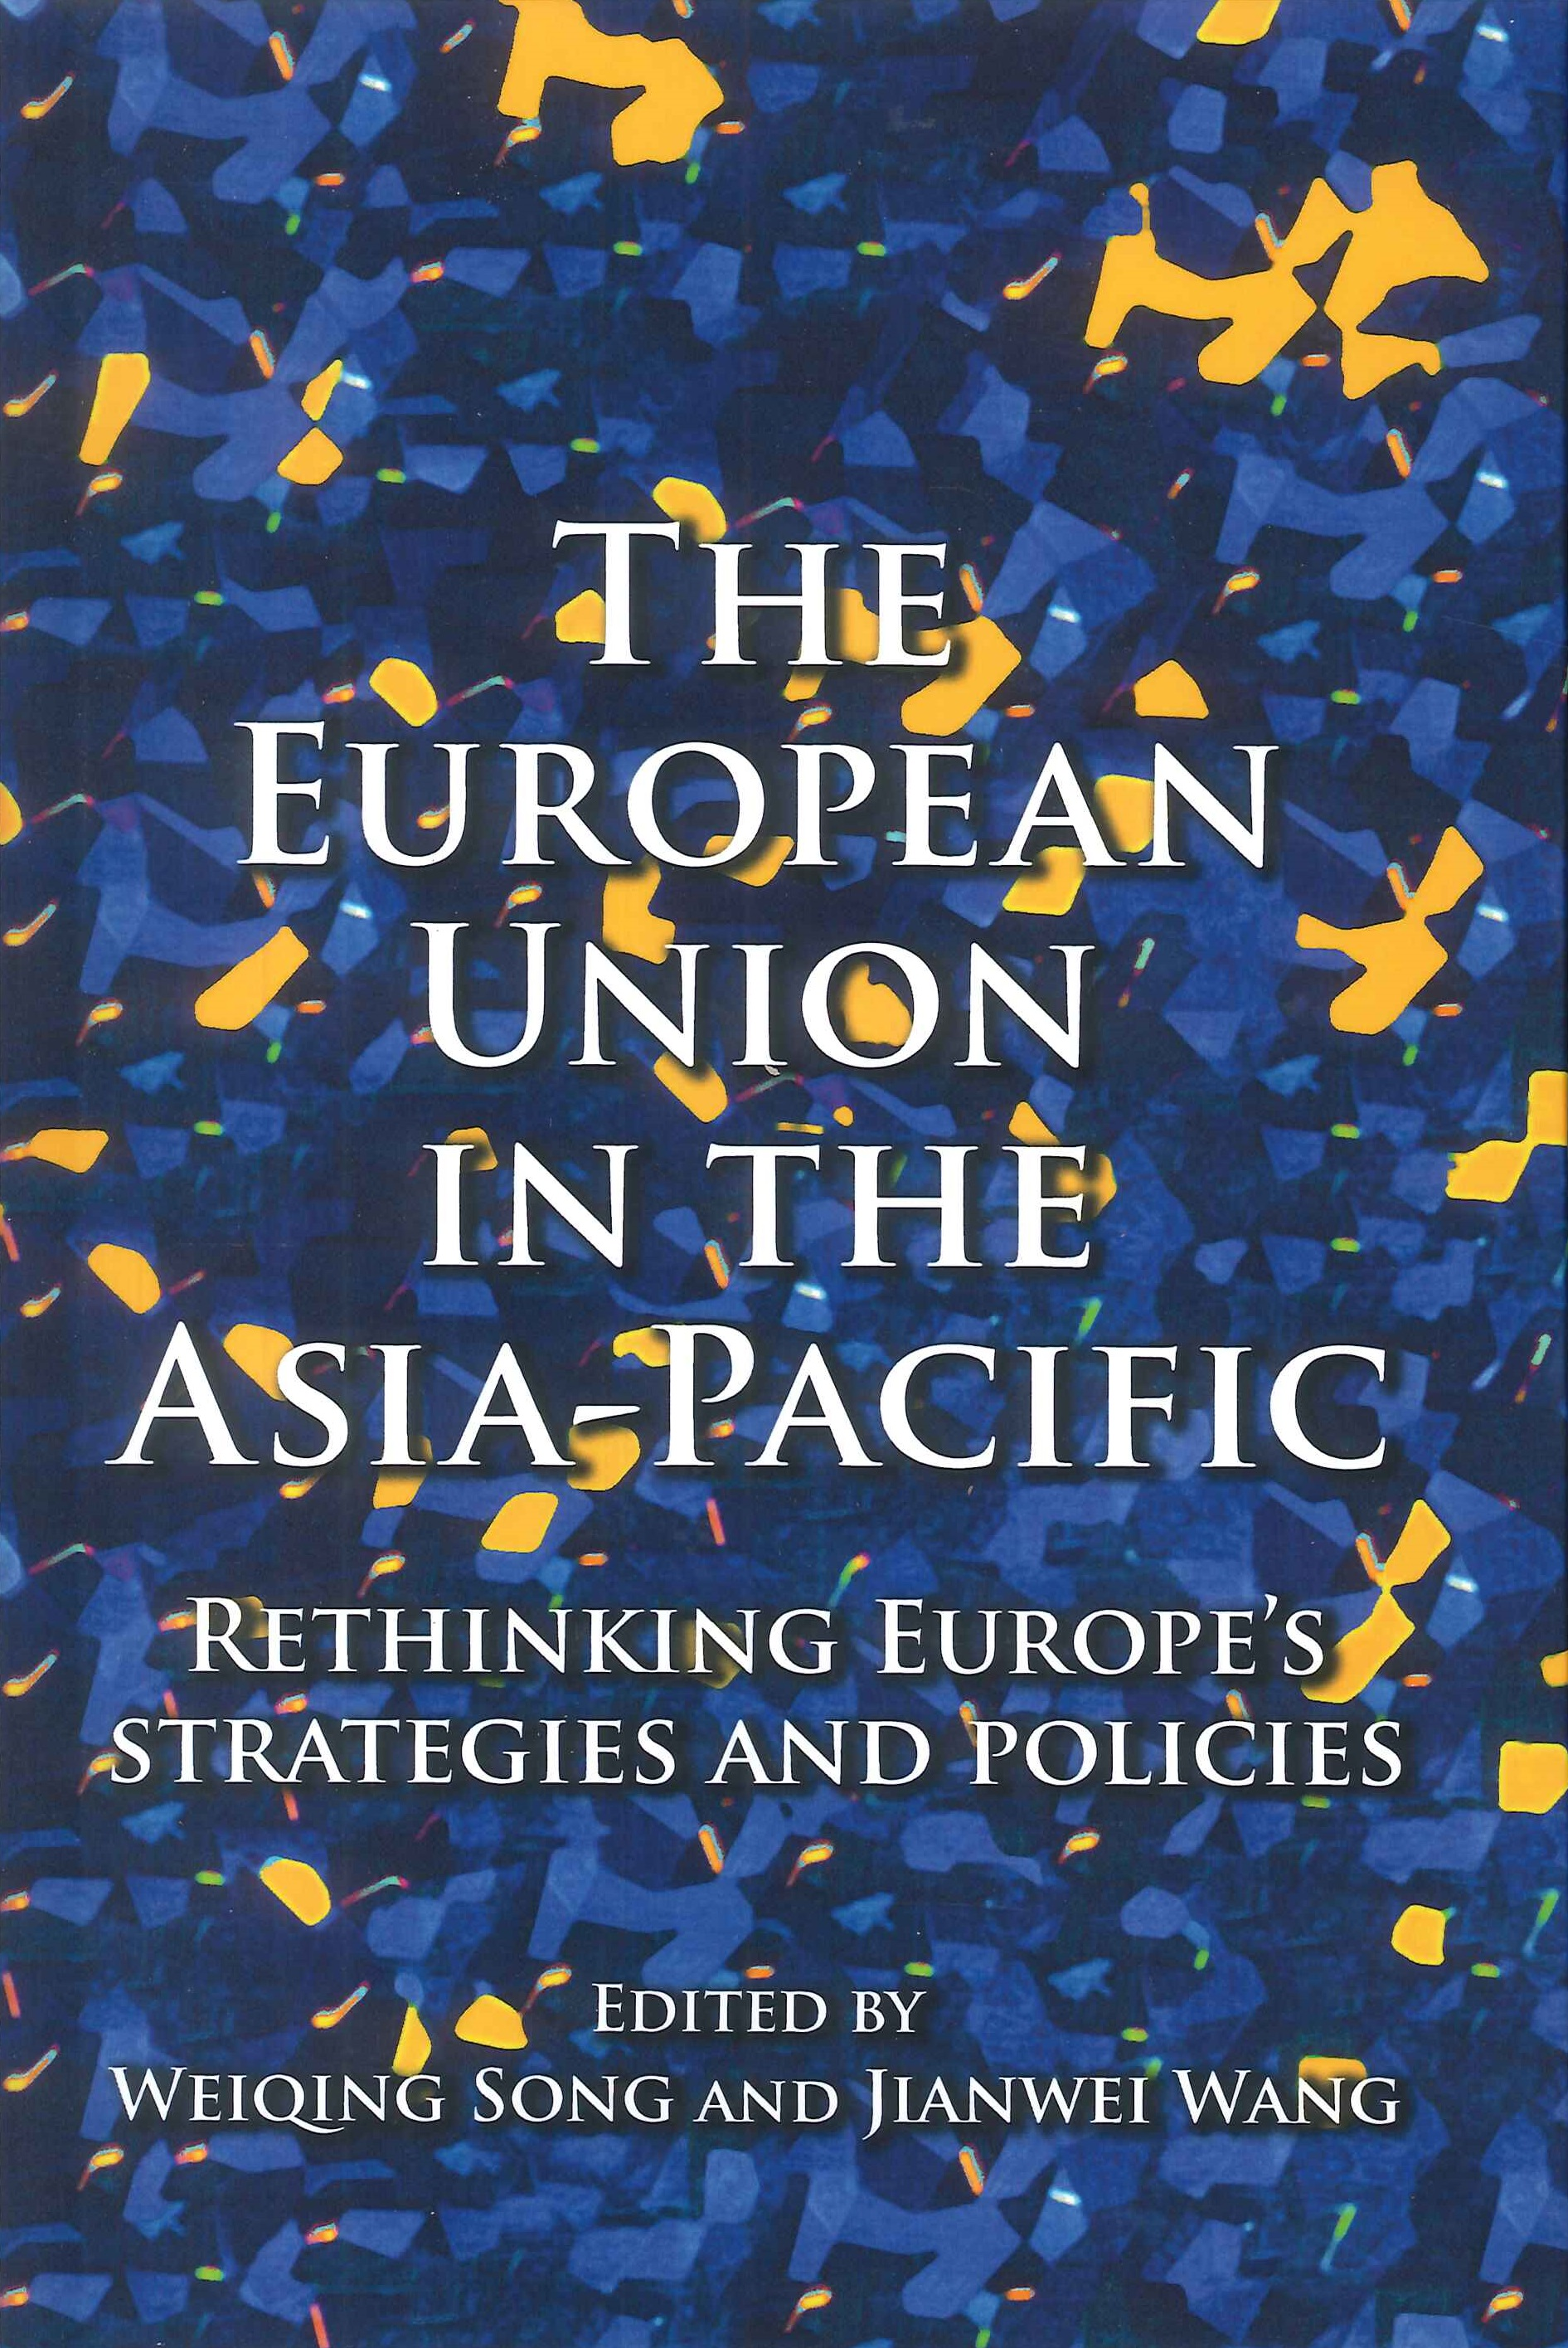 The European Union in the Asia-Pacific:rethinking Europe's strategies and policies